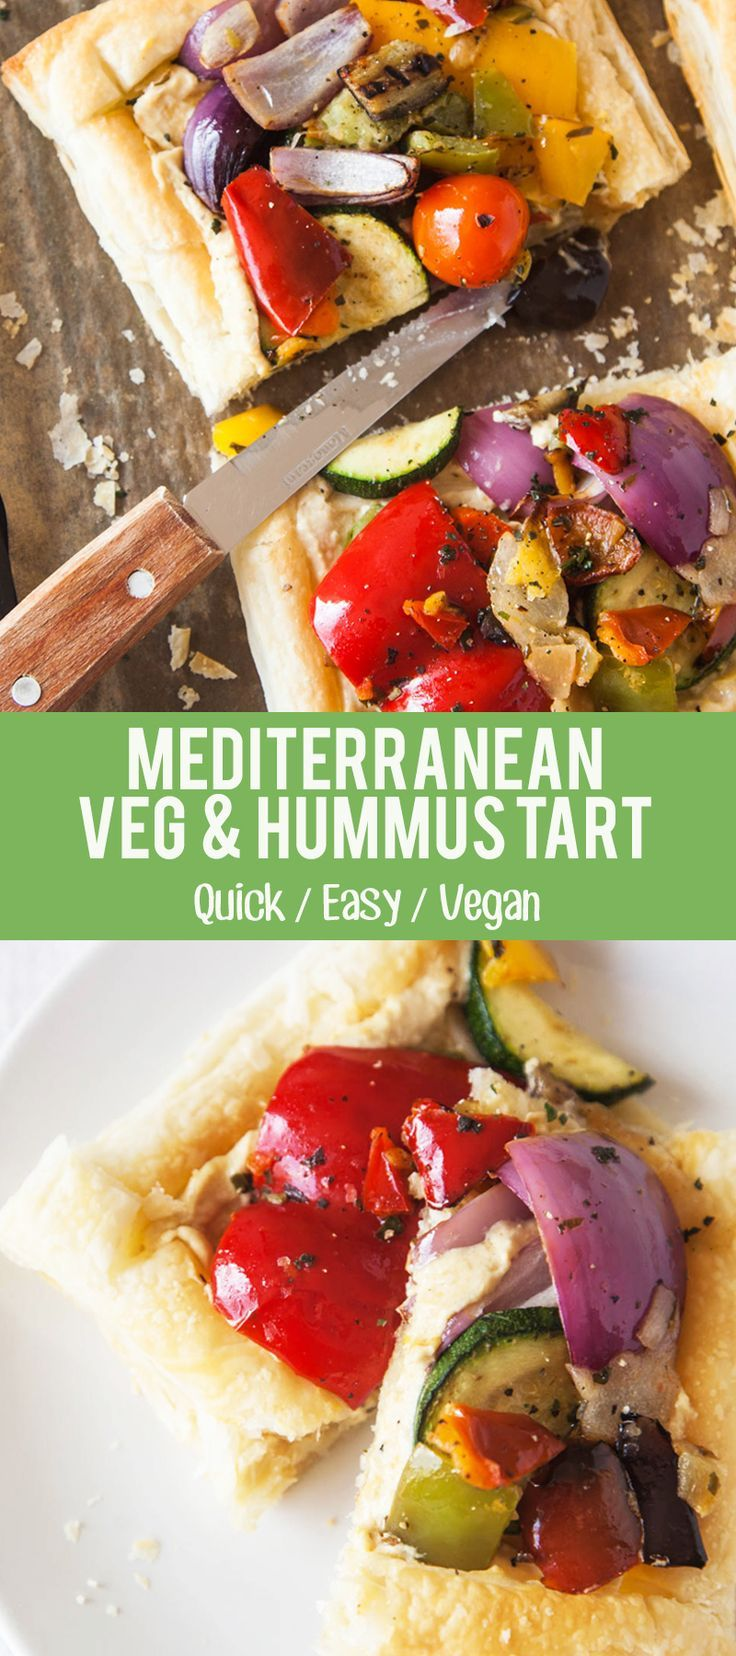 Mediterranean Hummus Tart {Vegan) Come and see our new website at bakedcomfortfood.com!